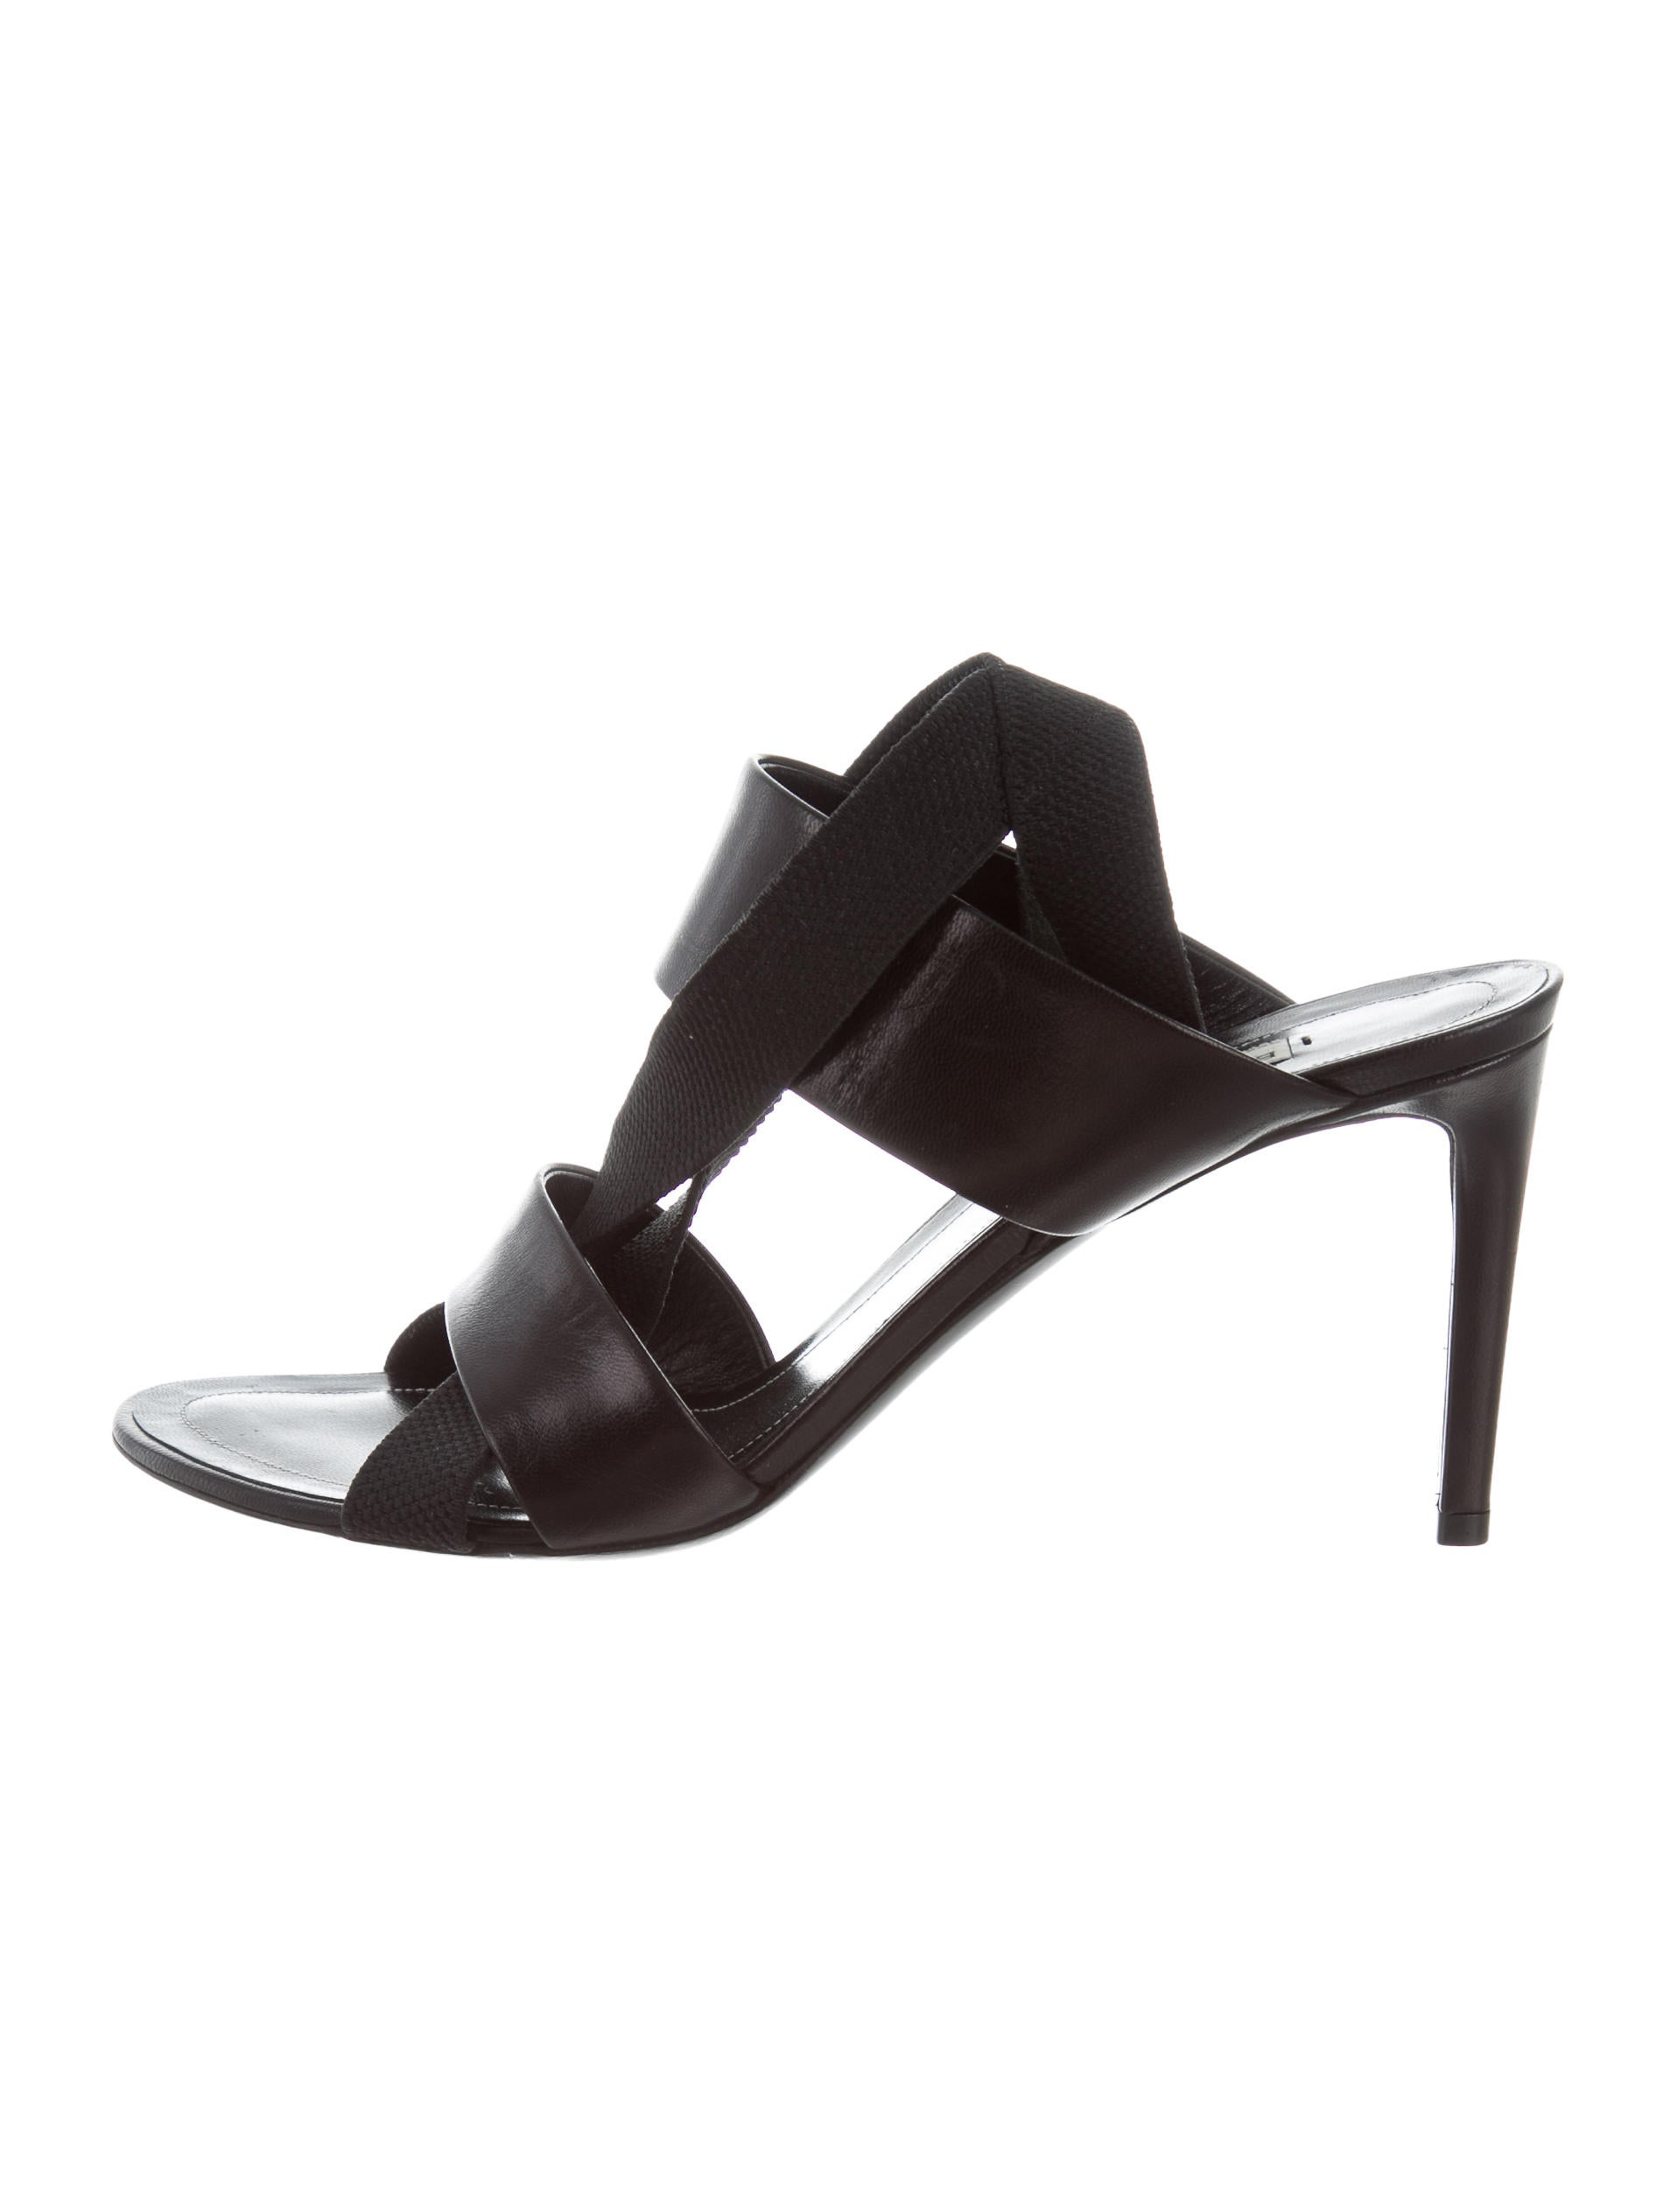 100% authentic online Balenciaga Leather Cross Strap Sandals best store to get cheap best prices cheap new arrival free shipping low price Ld195C5Tq